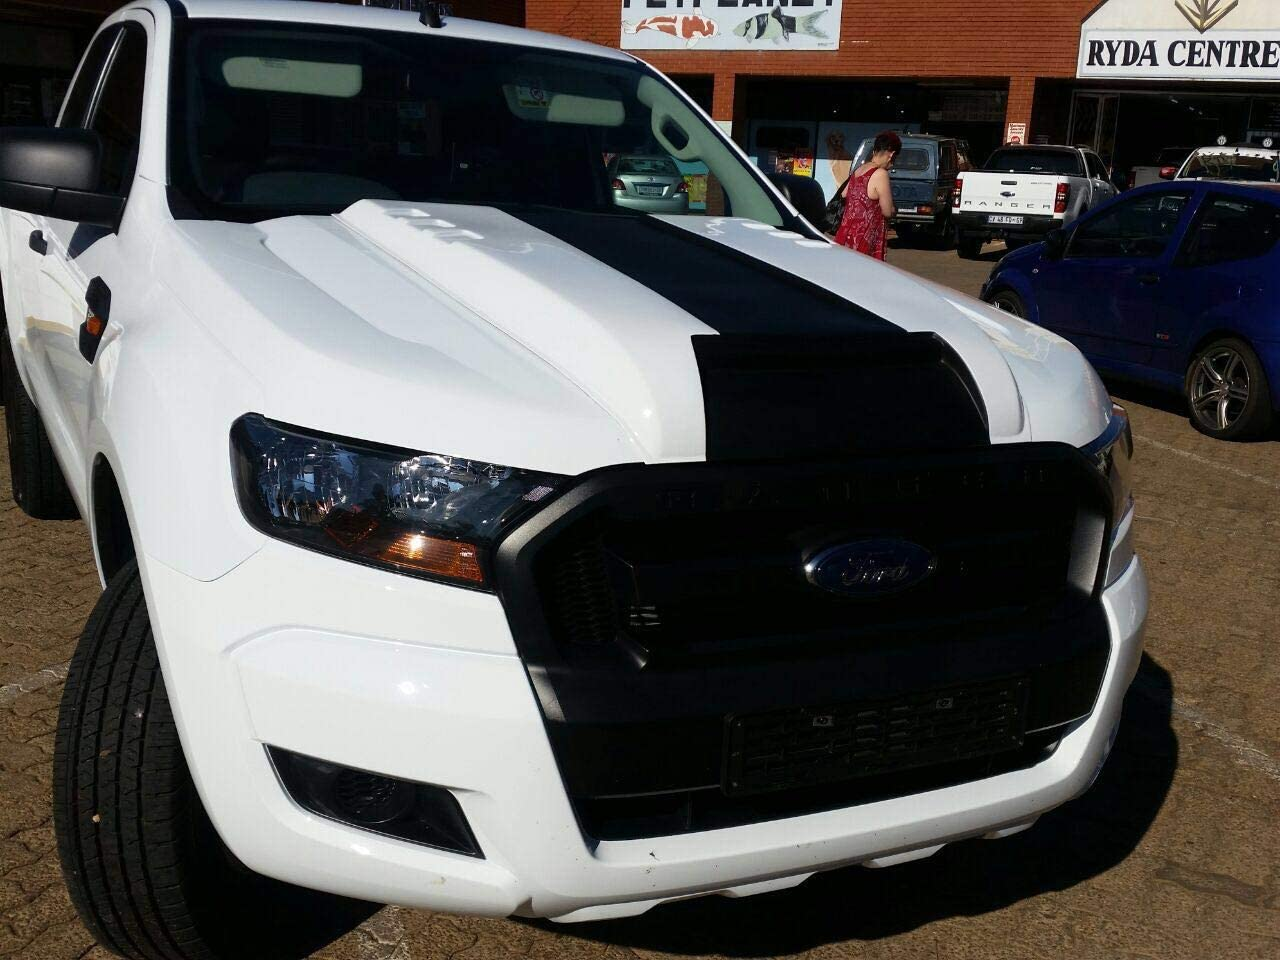 G/én/érique Enjoliveur de Capot pour Ford Ranger Bonnet Scoop de 2015 /à 2018